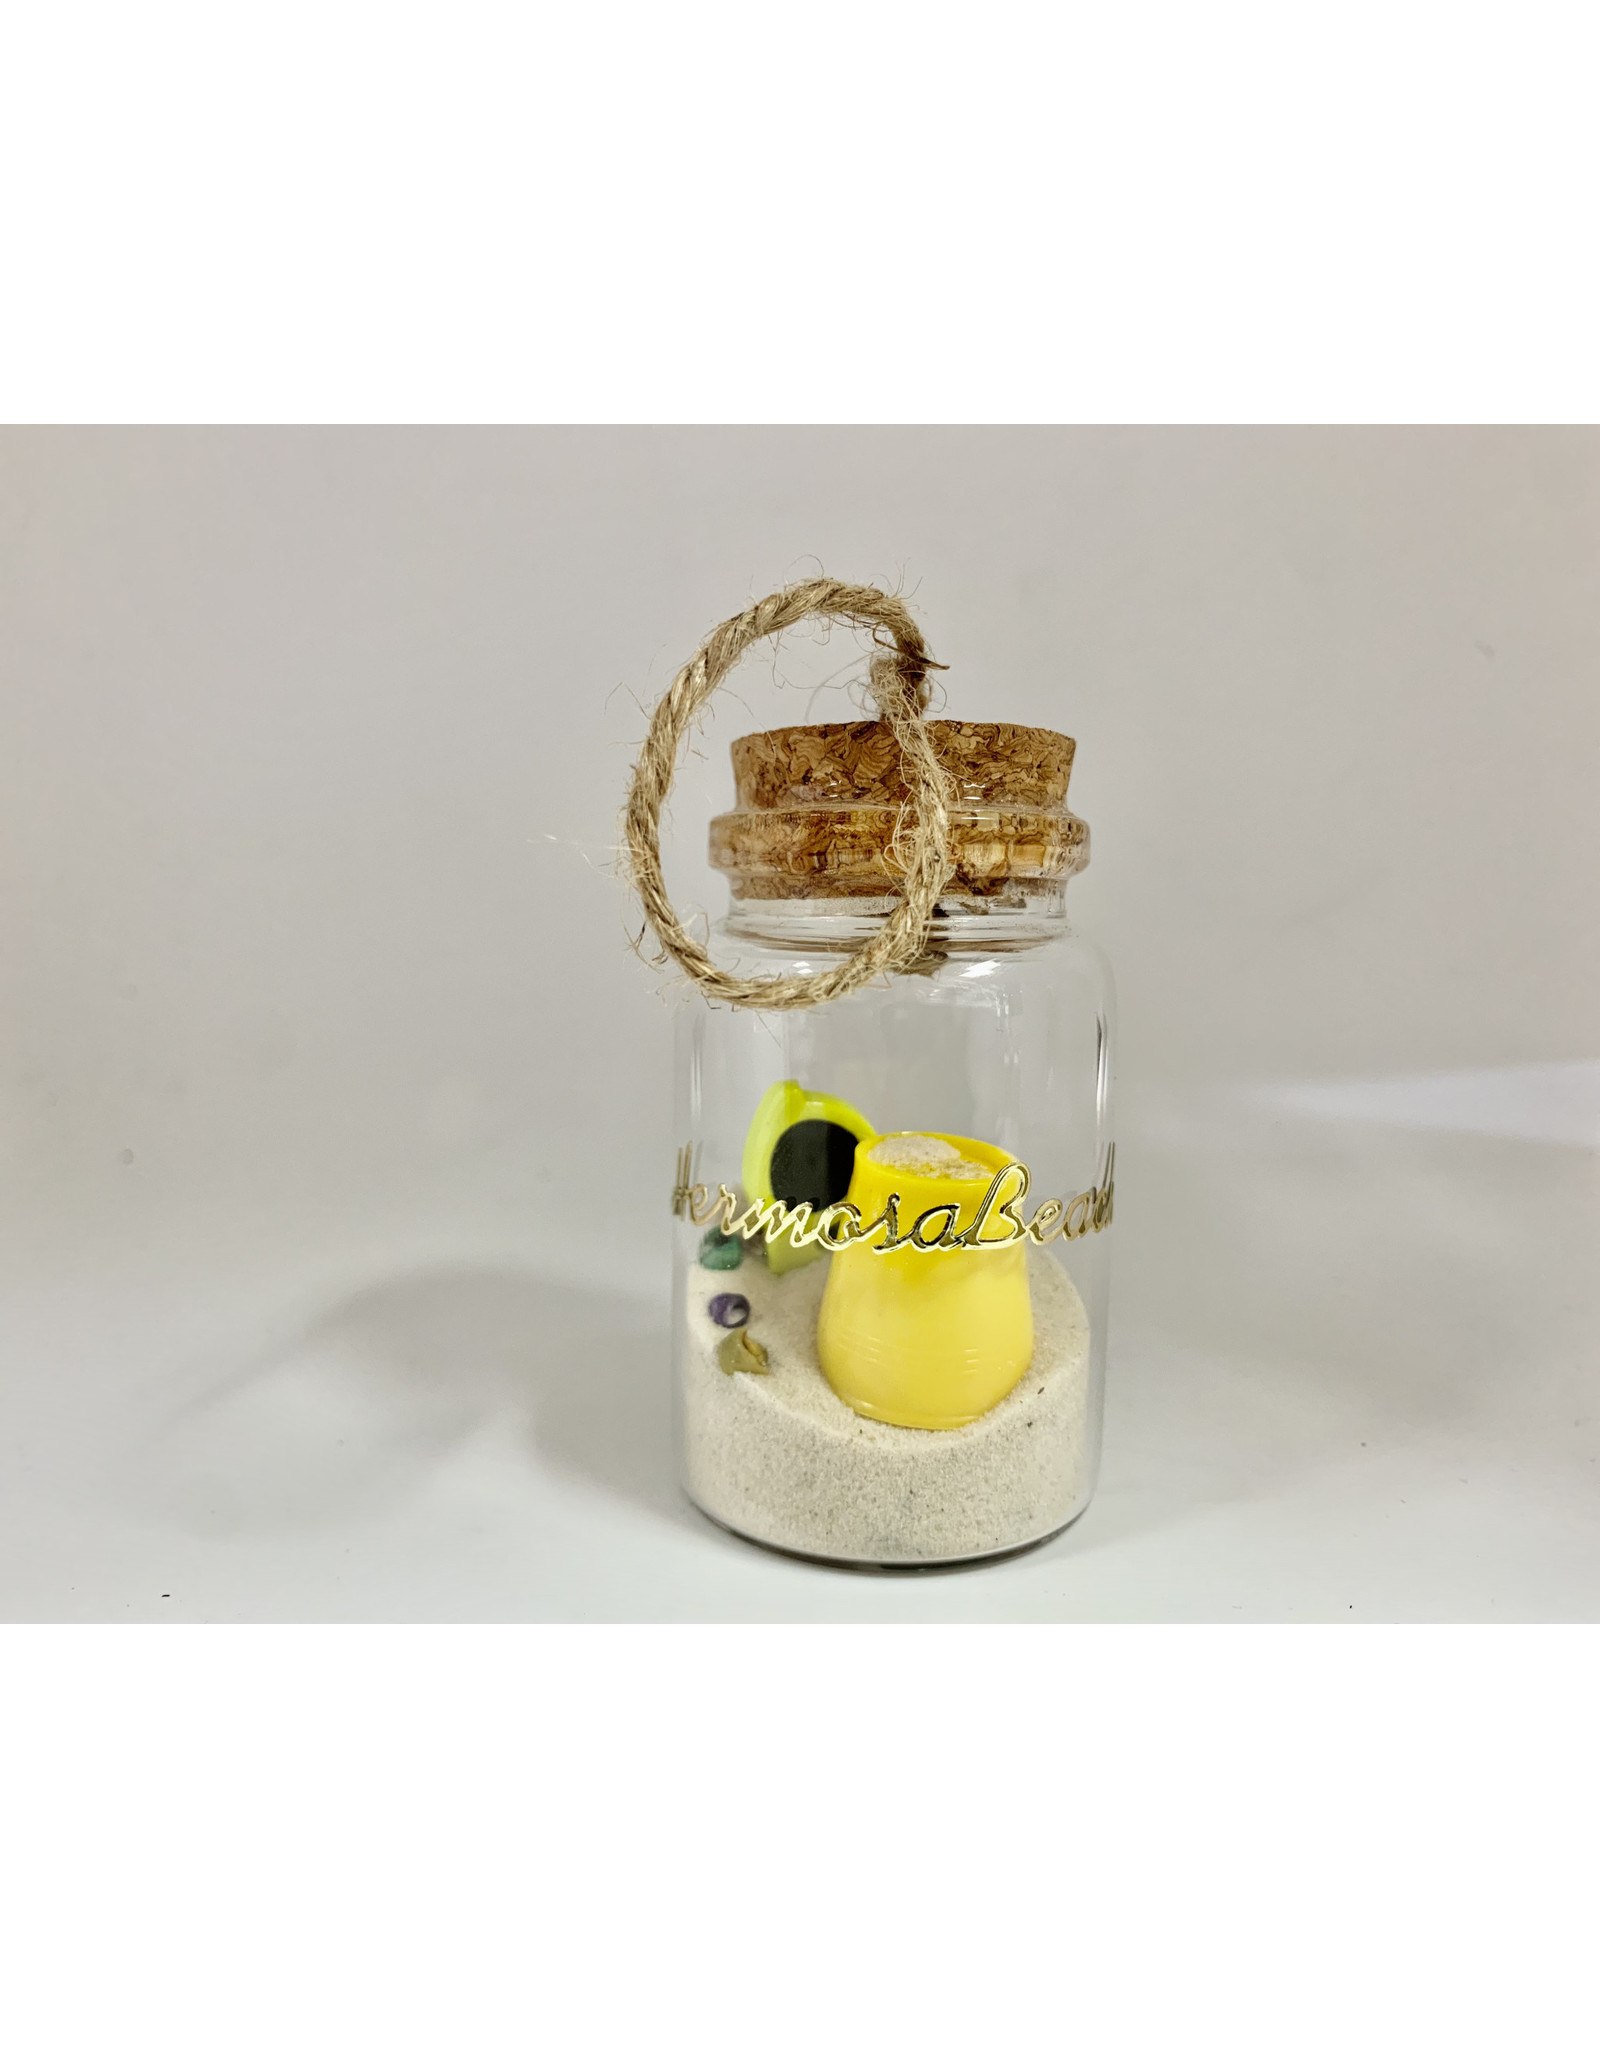 SAND IN A BOTTLE ORNAMENTS BUCKET SUNGLASSES